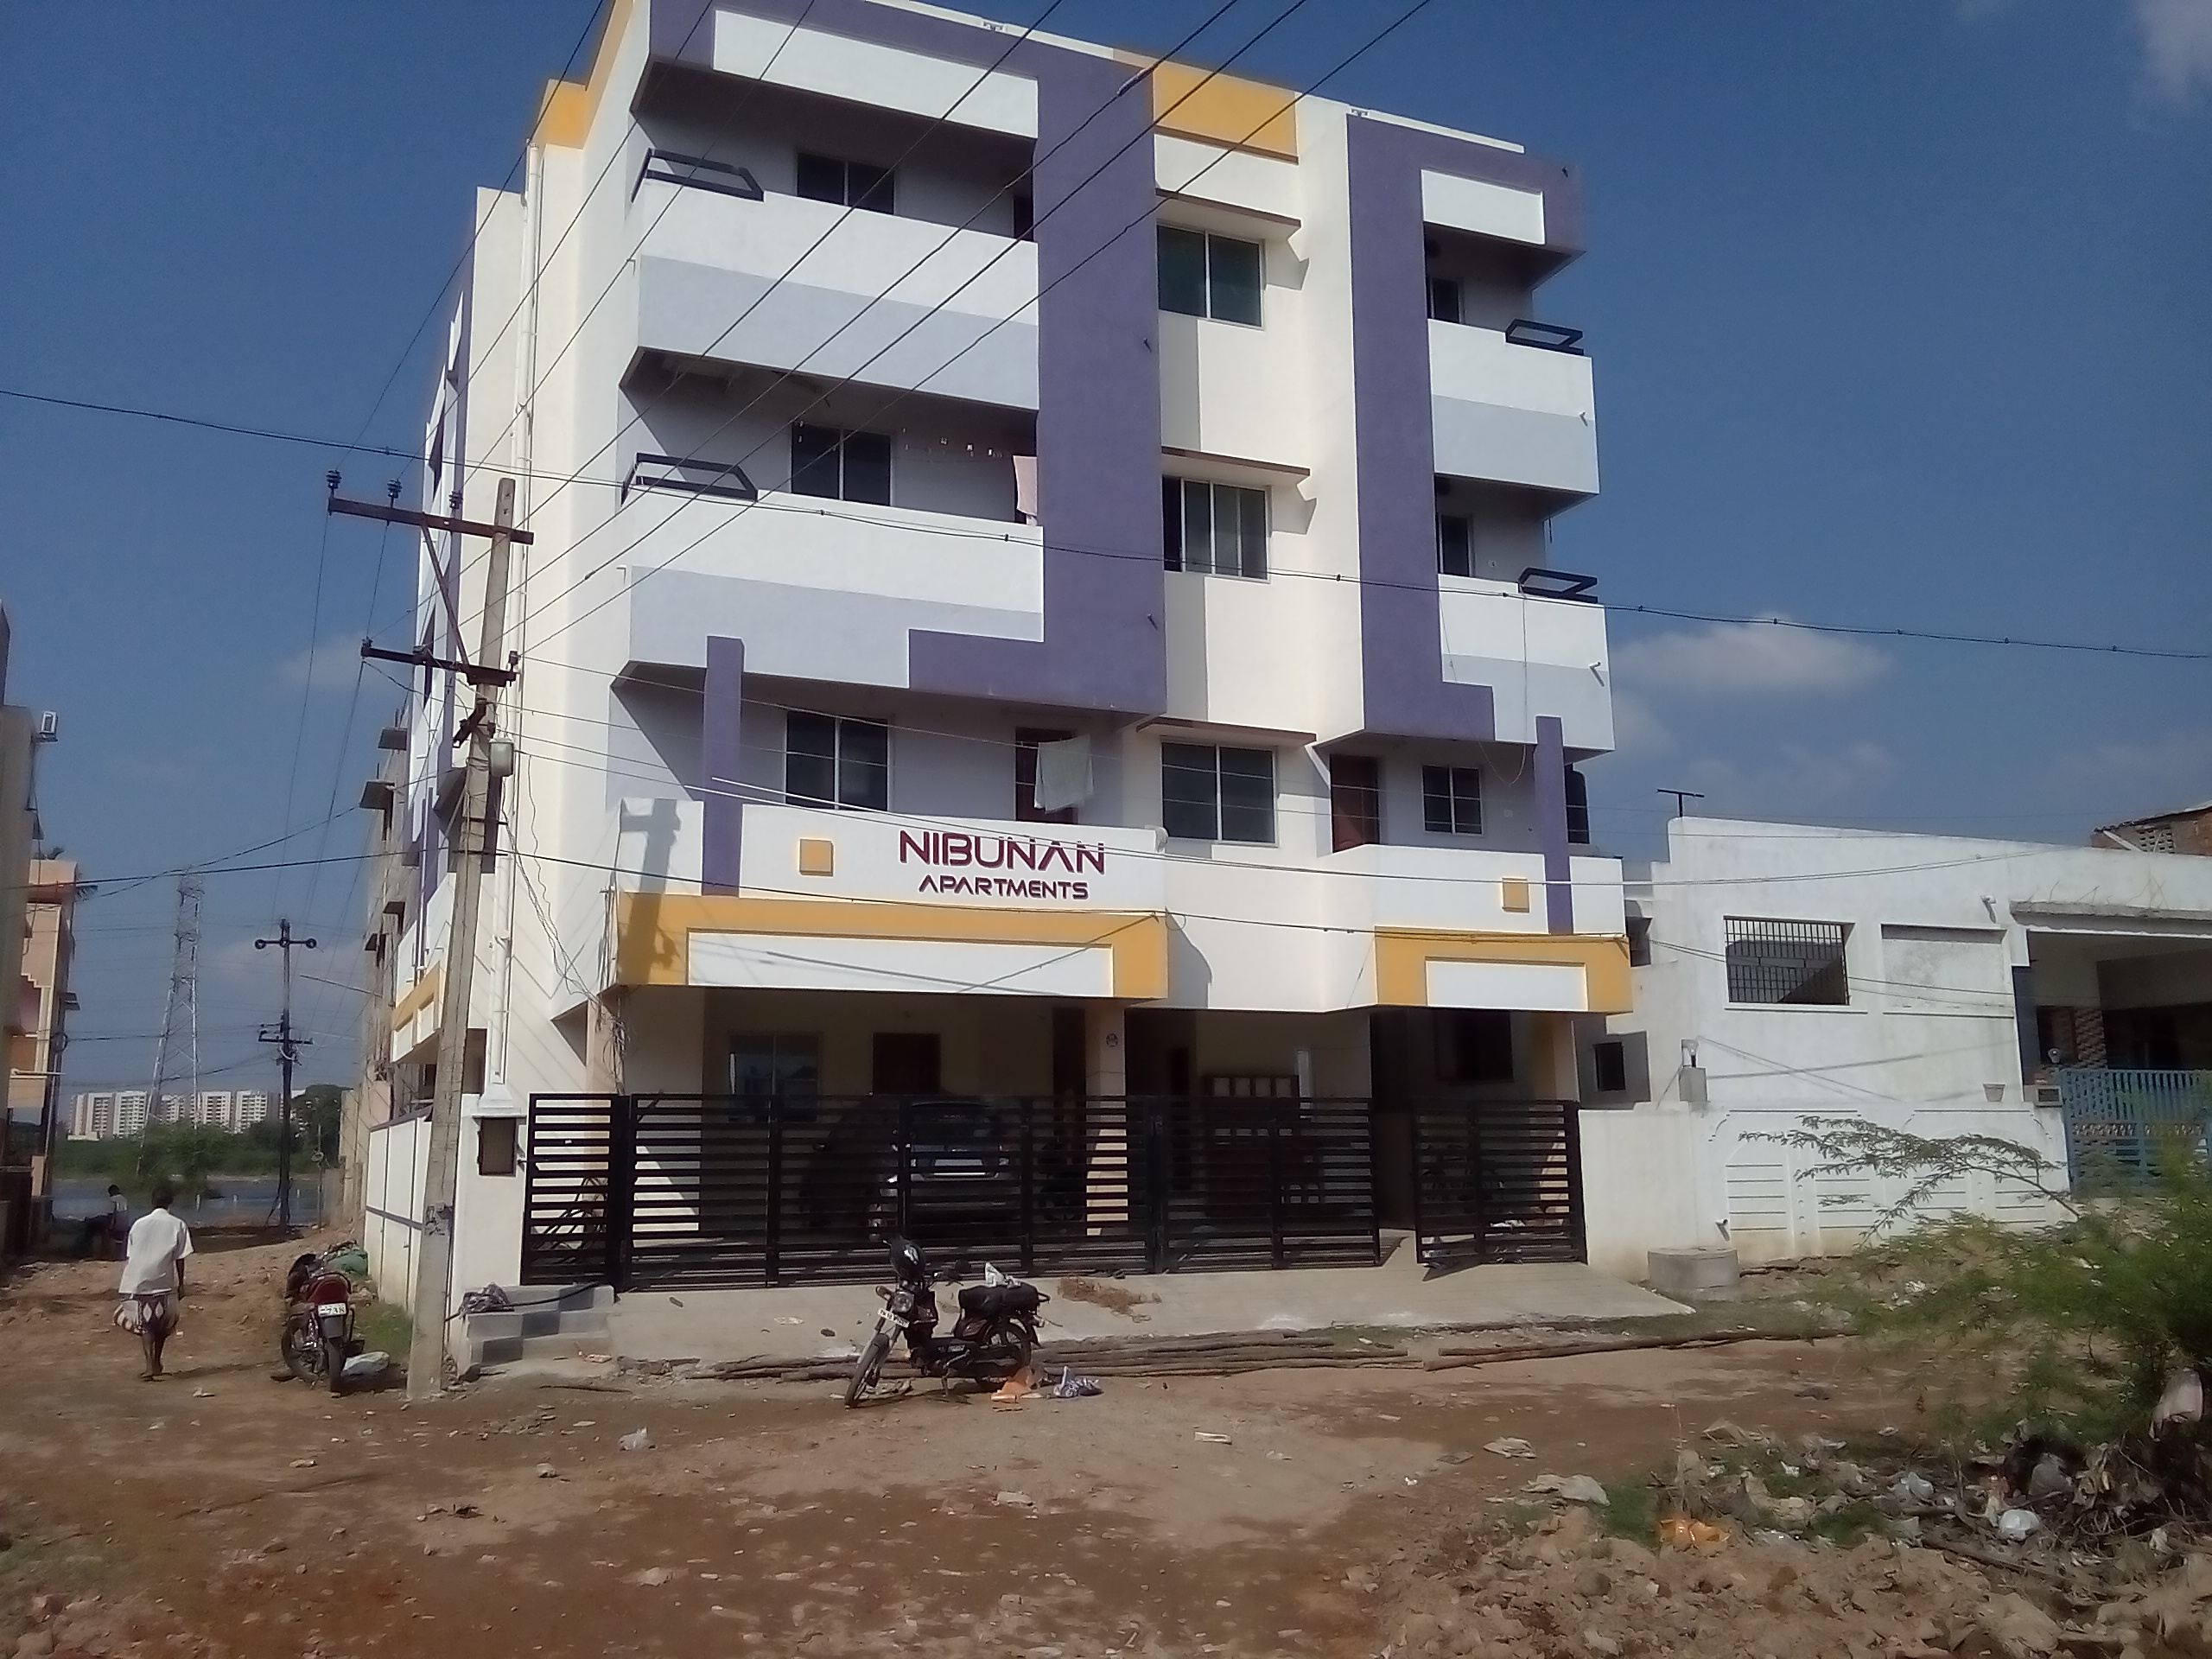 acp structural cladding in chennai, acp structural glazing in chennai, acp structural cladding companies in chennai, acp cladding contractors in chennai, acp glazing contractors in chennai